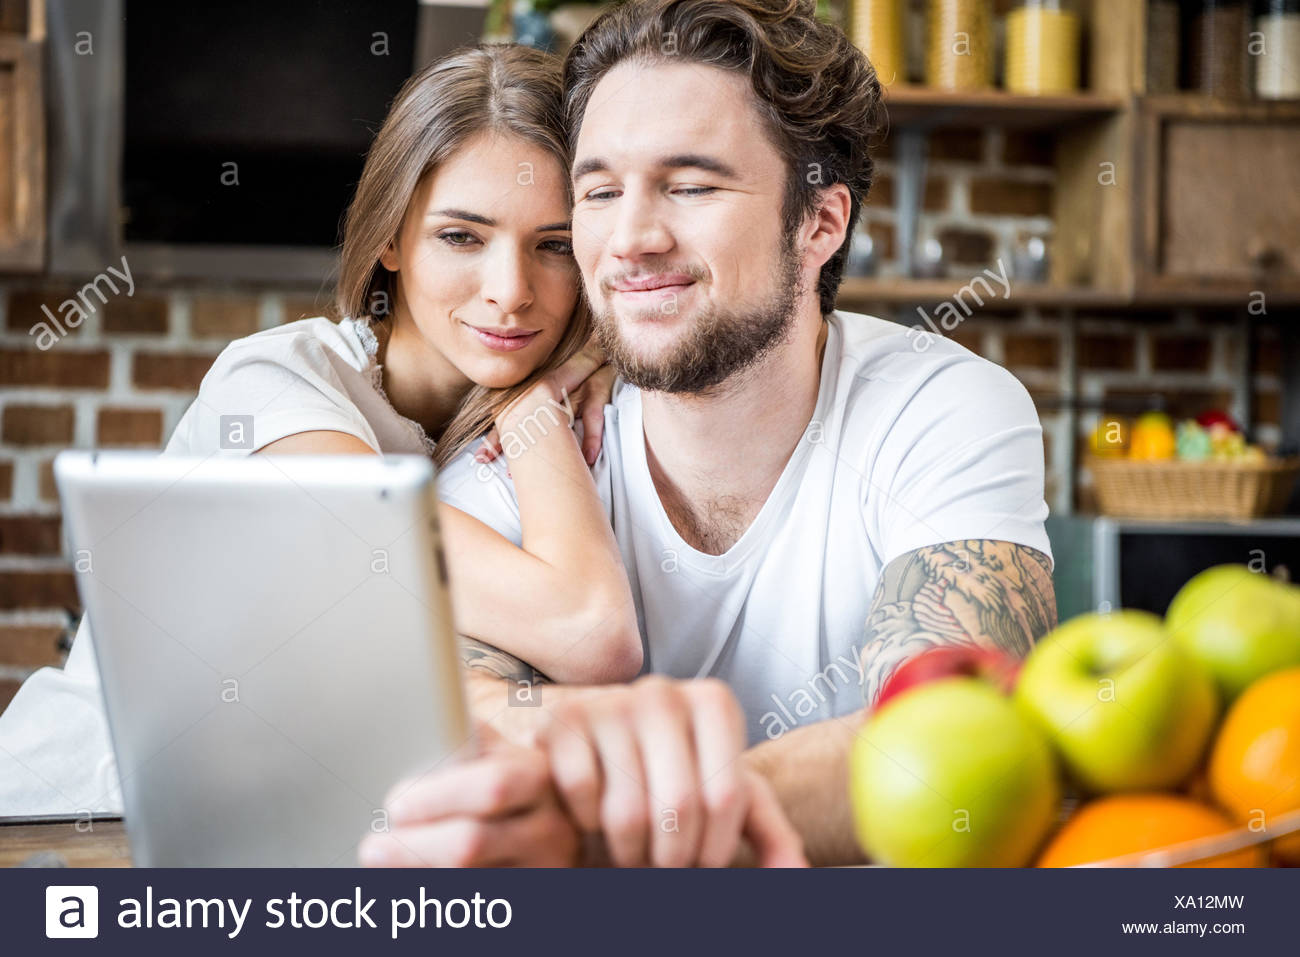 Couple using digital tablet at kitchen - Stock Image